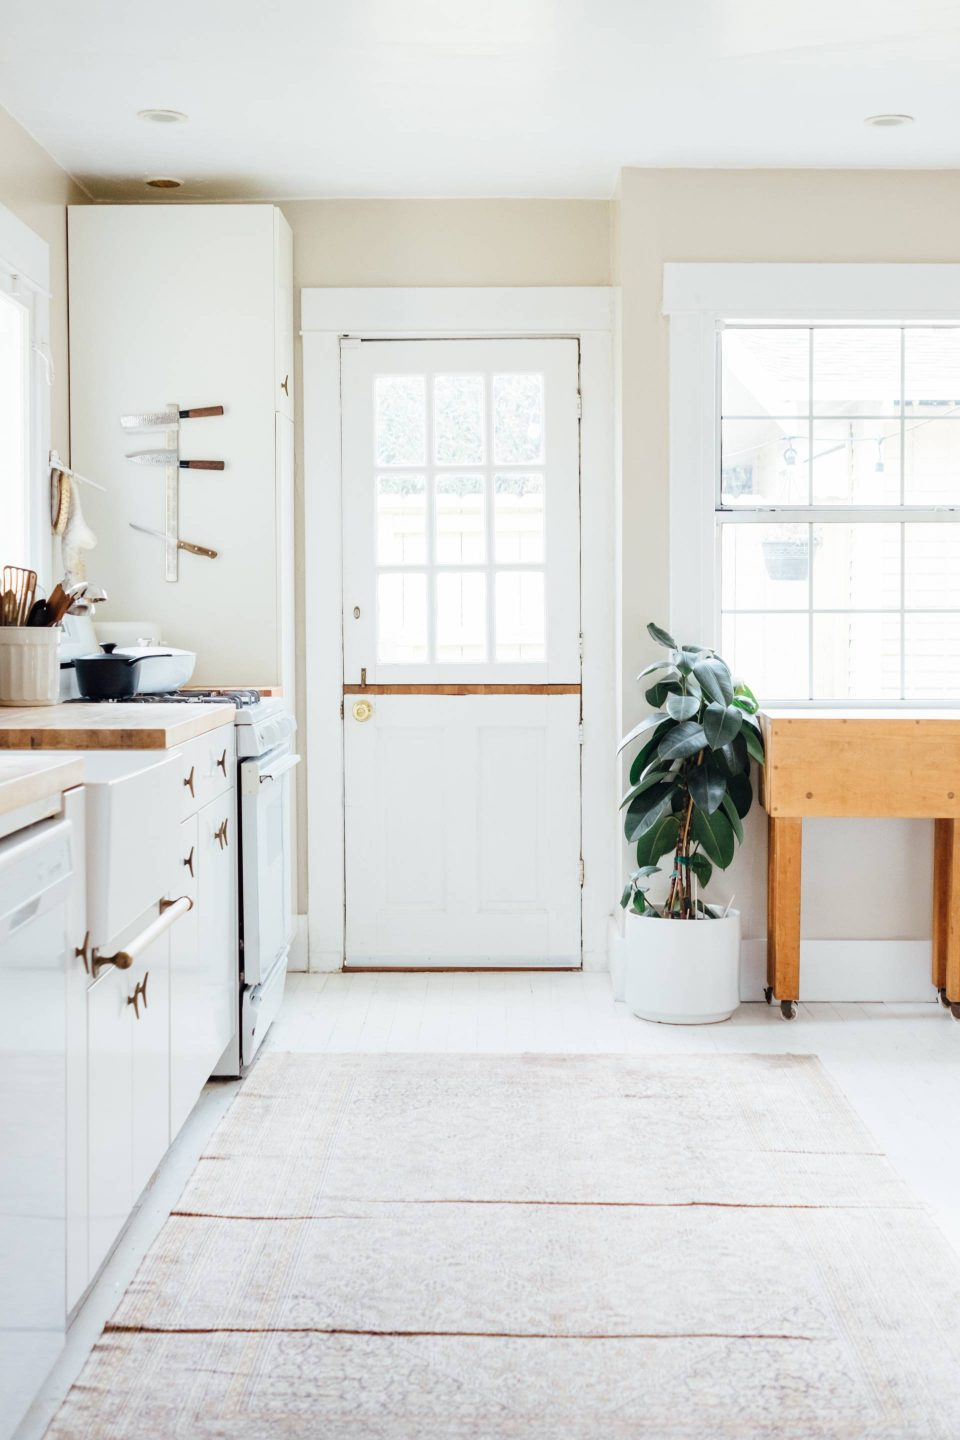 kitchen upgrades on a budget, tips form sophie robinson